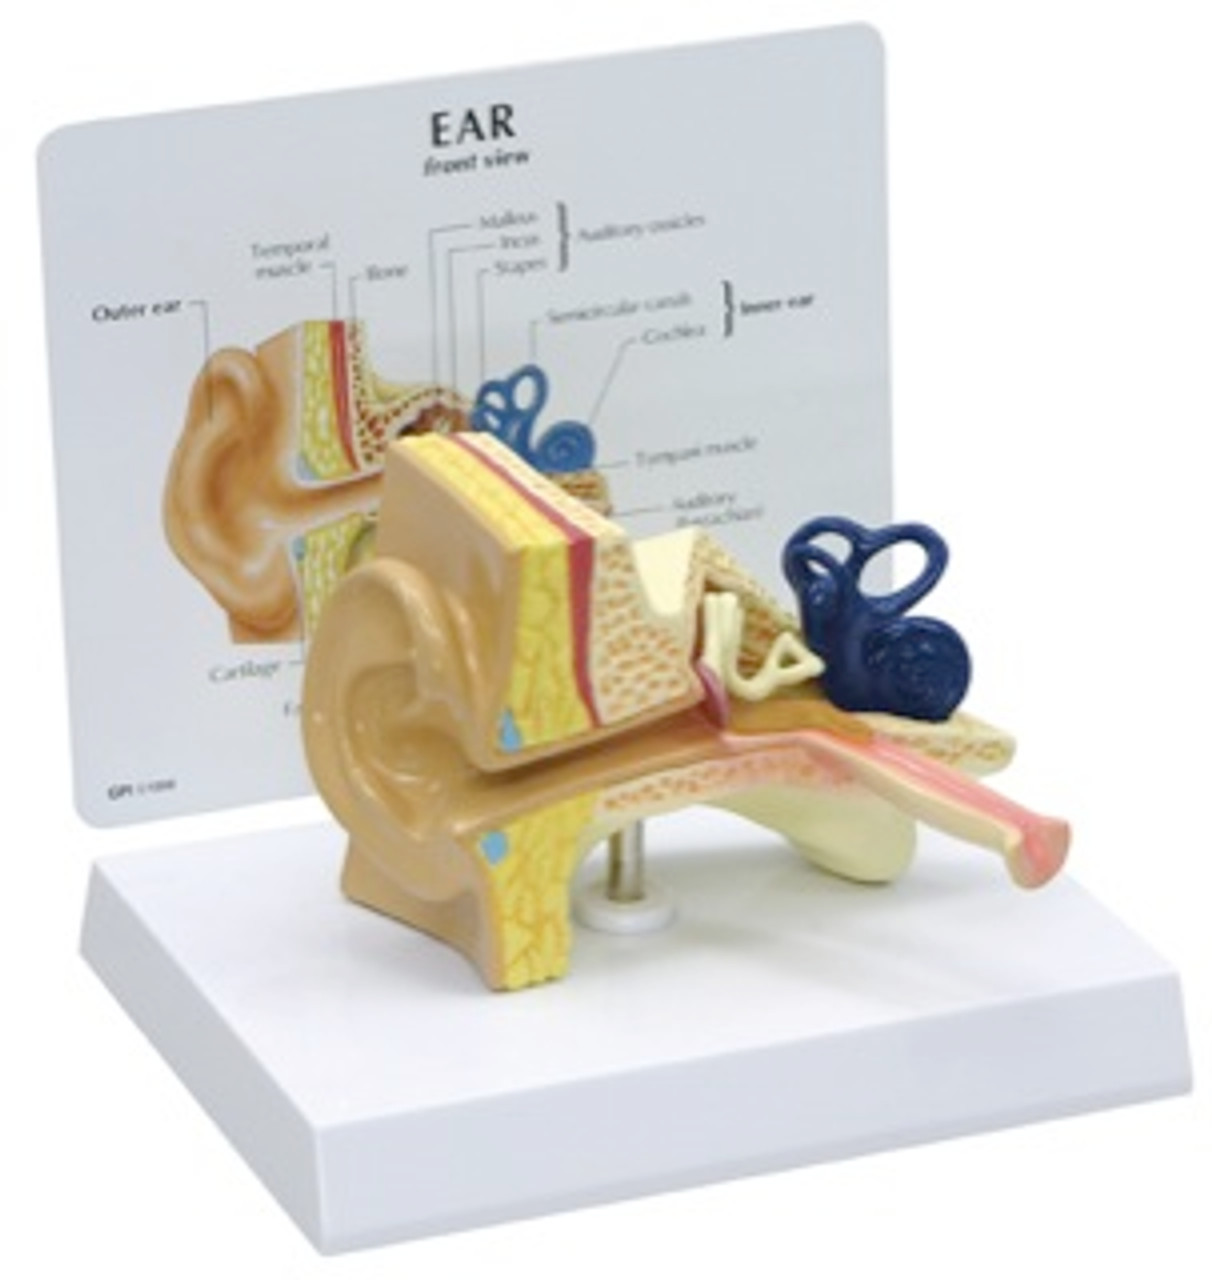 Ear Anatomical Model - Childs